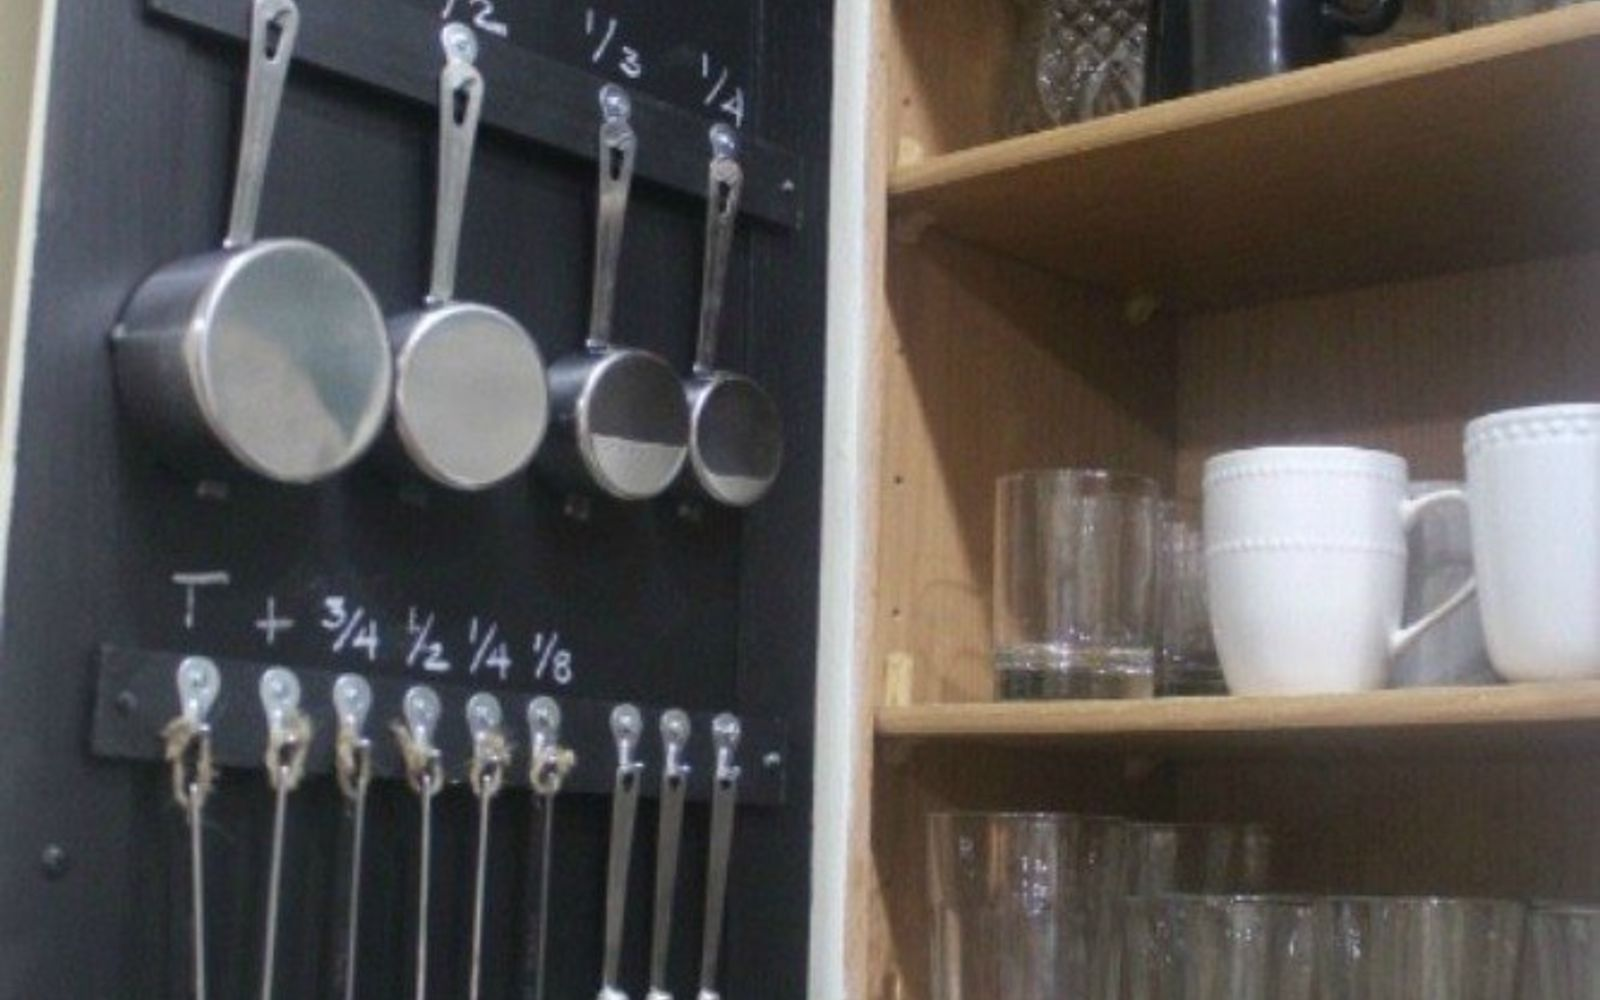 s 12 space saving solutions for your tight kitchen, kitchen design, shelving ideas, Organize measuring cups on your cabinet door